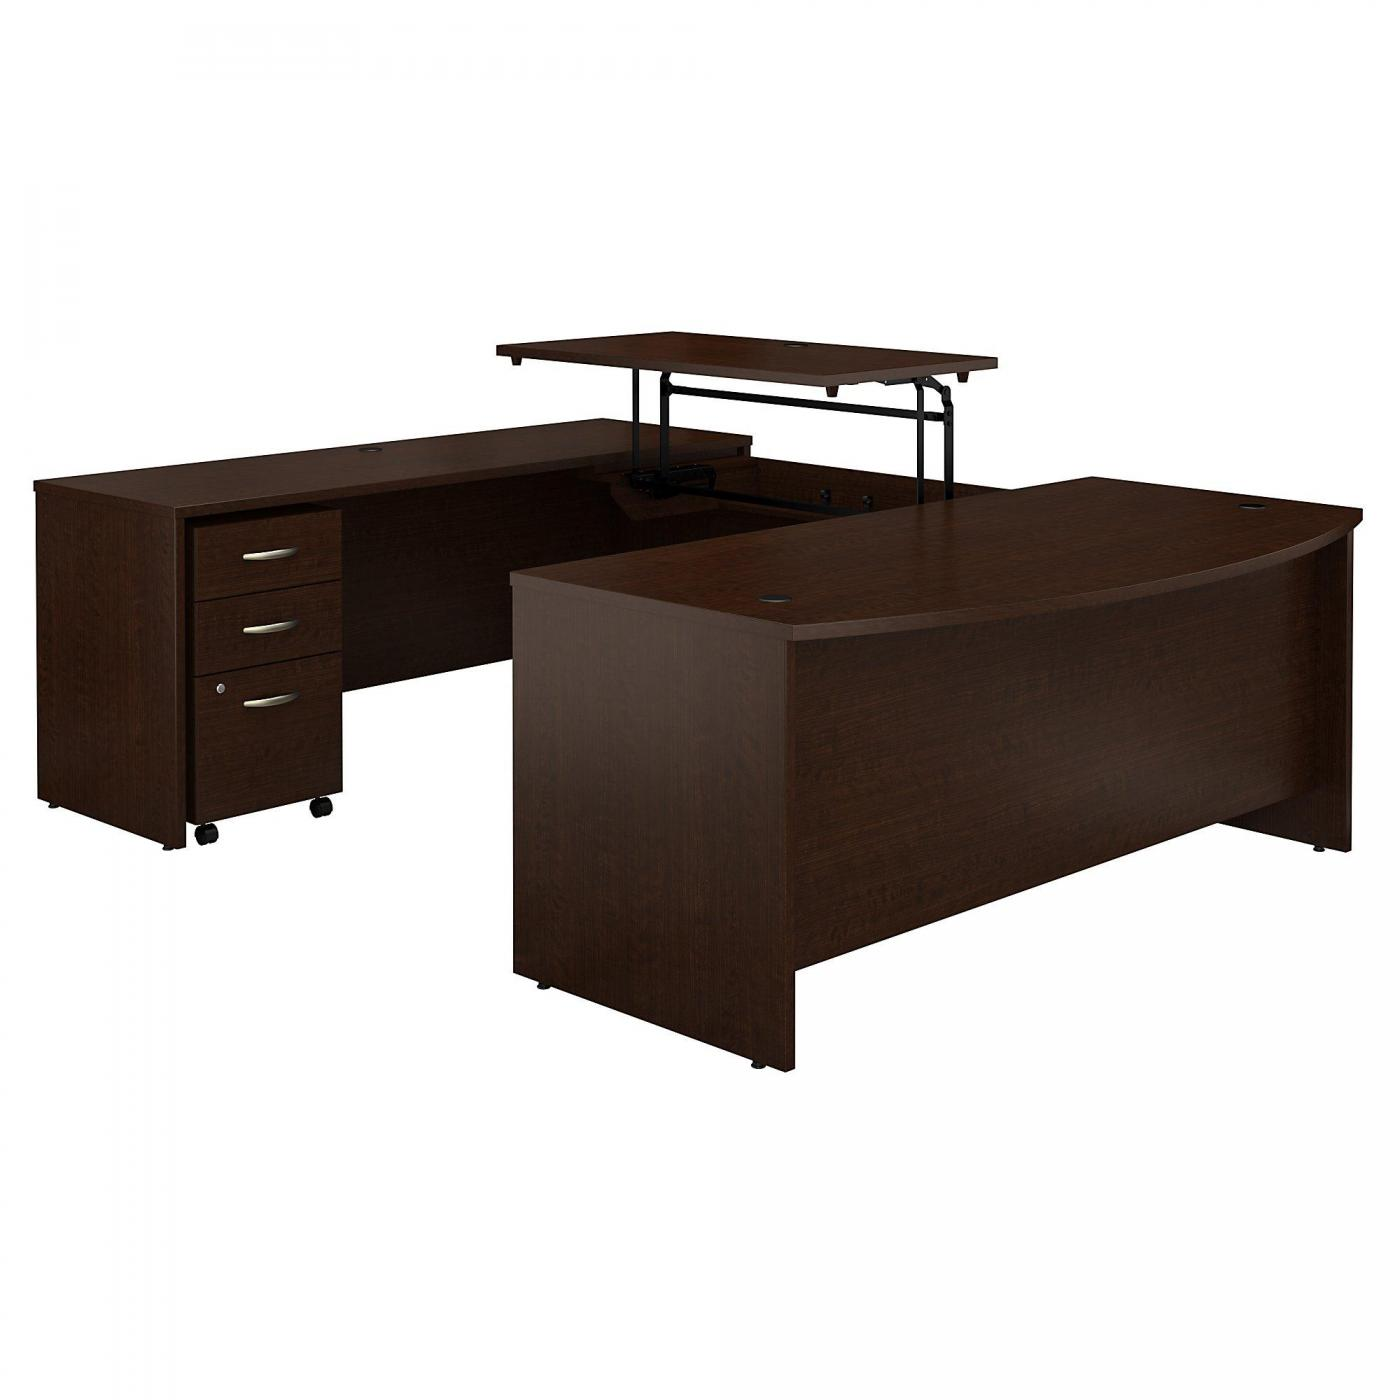 <font color=#c60><b>BUSH BUSINESS FURNITURE SERIES C 72W X 36D 3 POSITION SIT TO STAND BOW FRONT U SHAPED DESK WITH MOBILE FILE CABINET. FREE SHIPPING. VIDEO:</font></b></font></b>